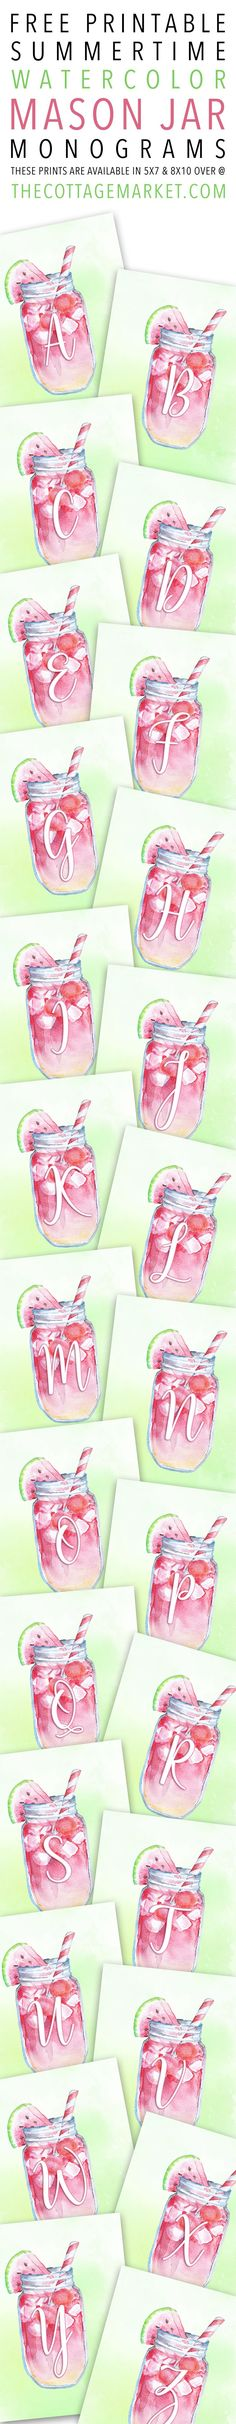 Free Printable Summertime Watercolor Mason Jar Monograms - The Cottage Market